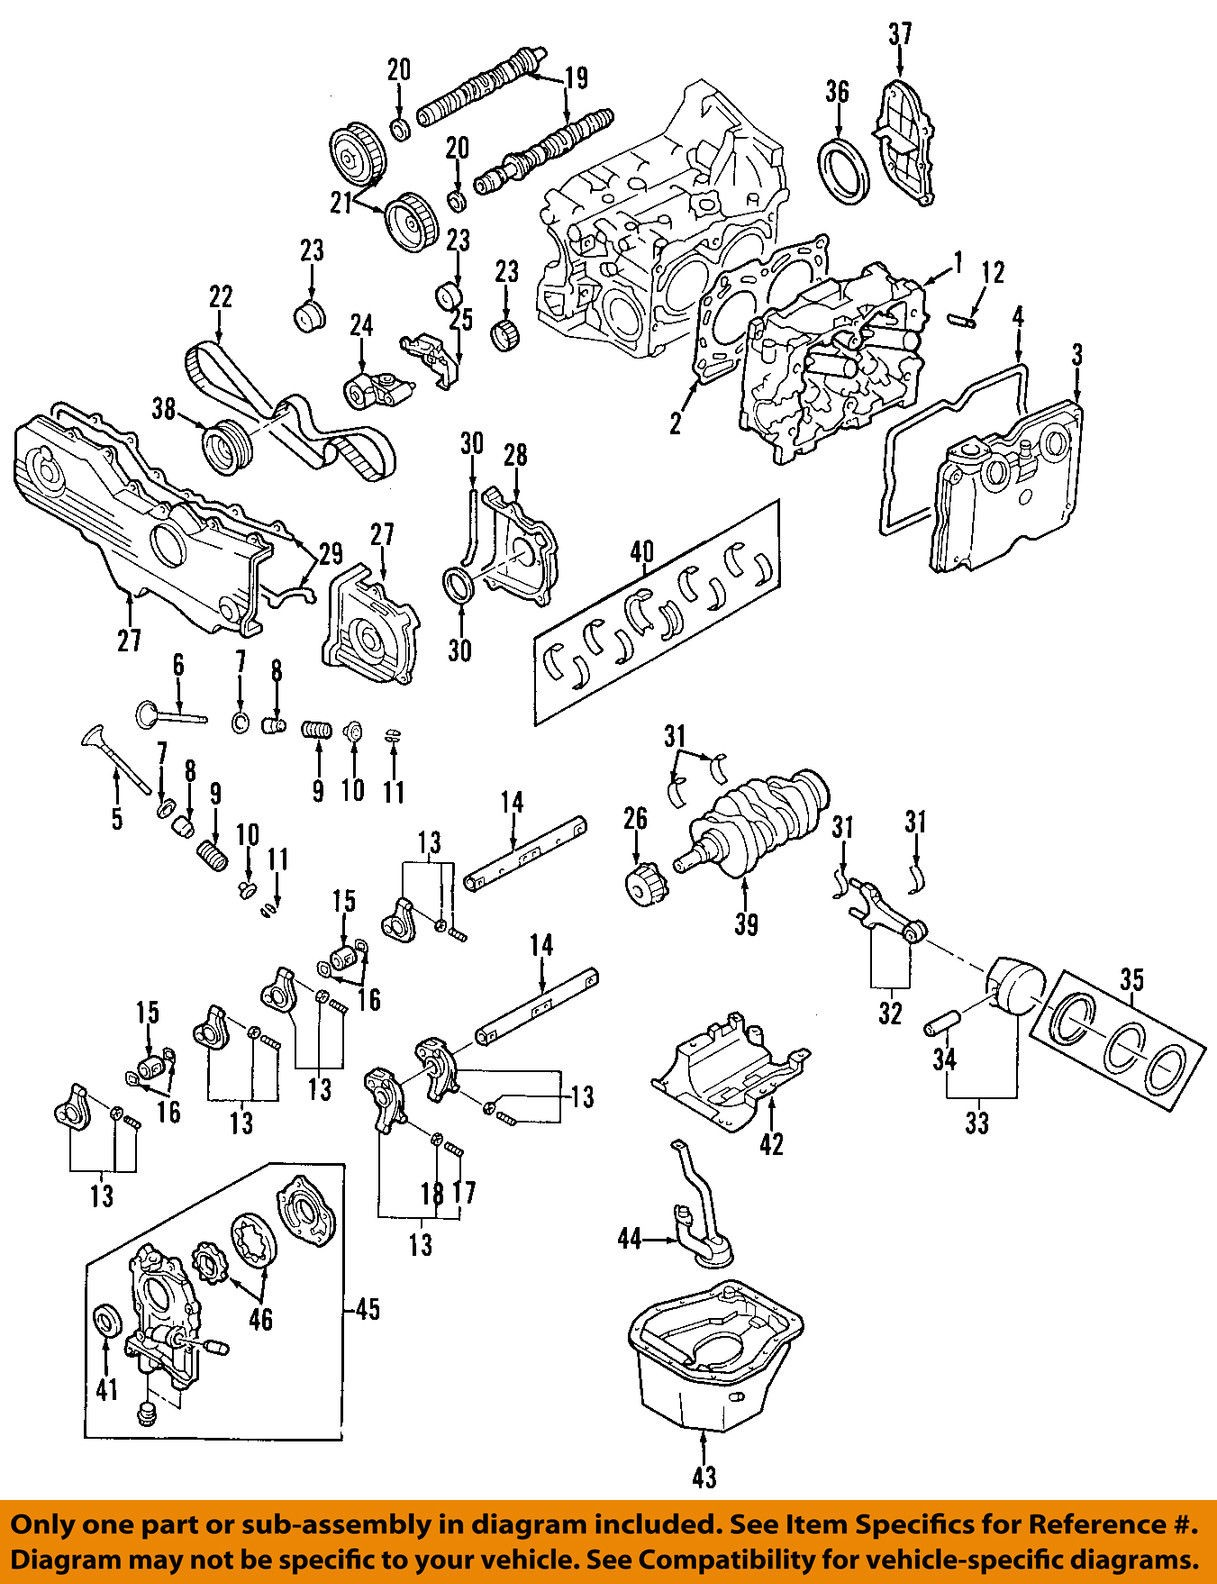 hight resolution of ej253 engine diagram completed wiring diagrams 1995 subaru legacy engine diagram subaru 2 2 engine oil diagram